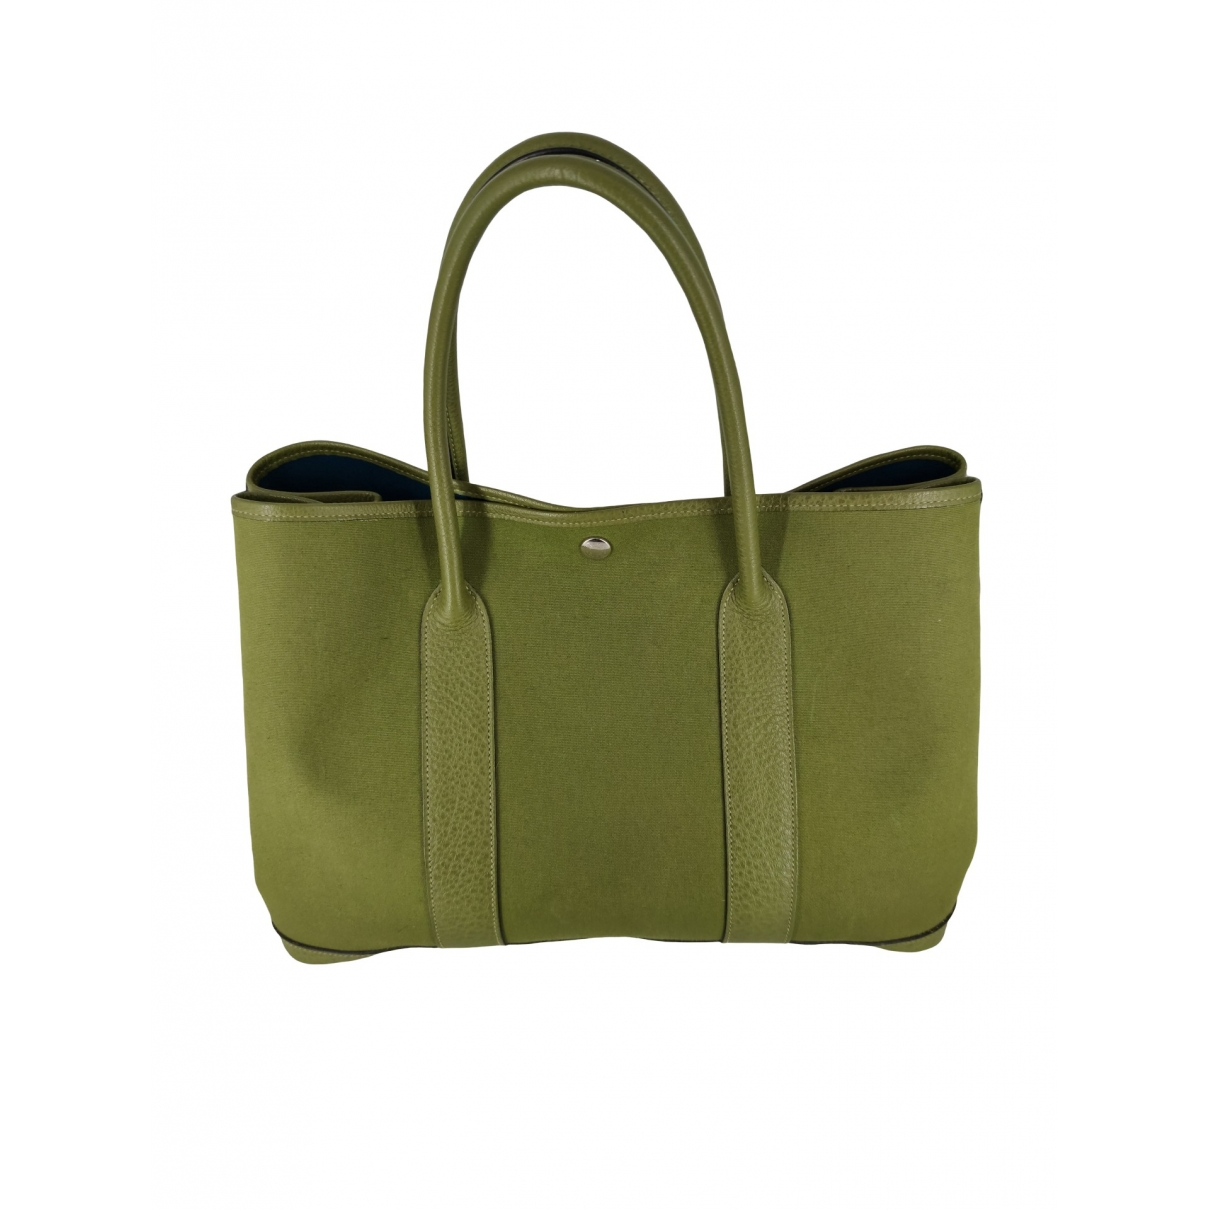 Hermès Garden Party Green Leather handbag for Women \N